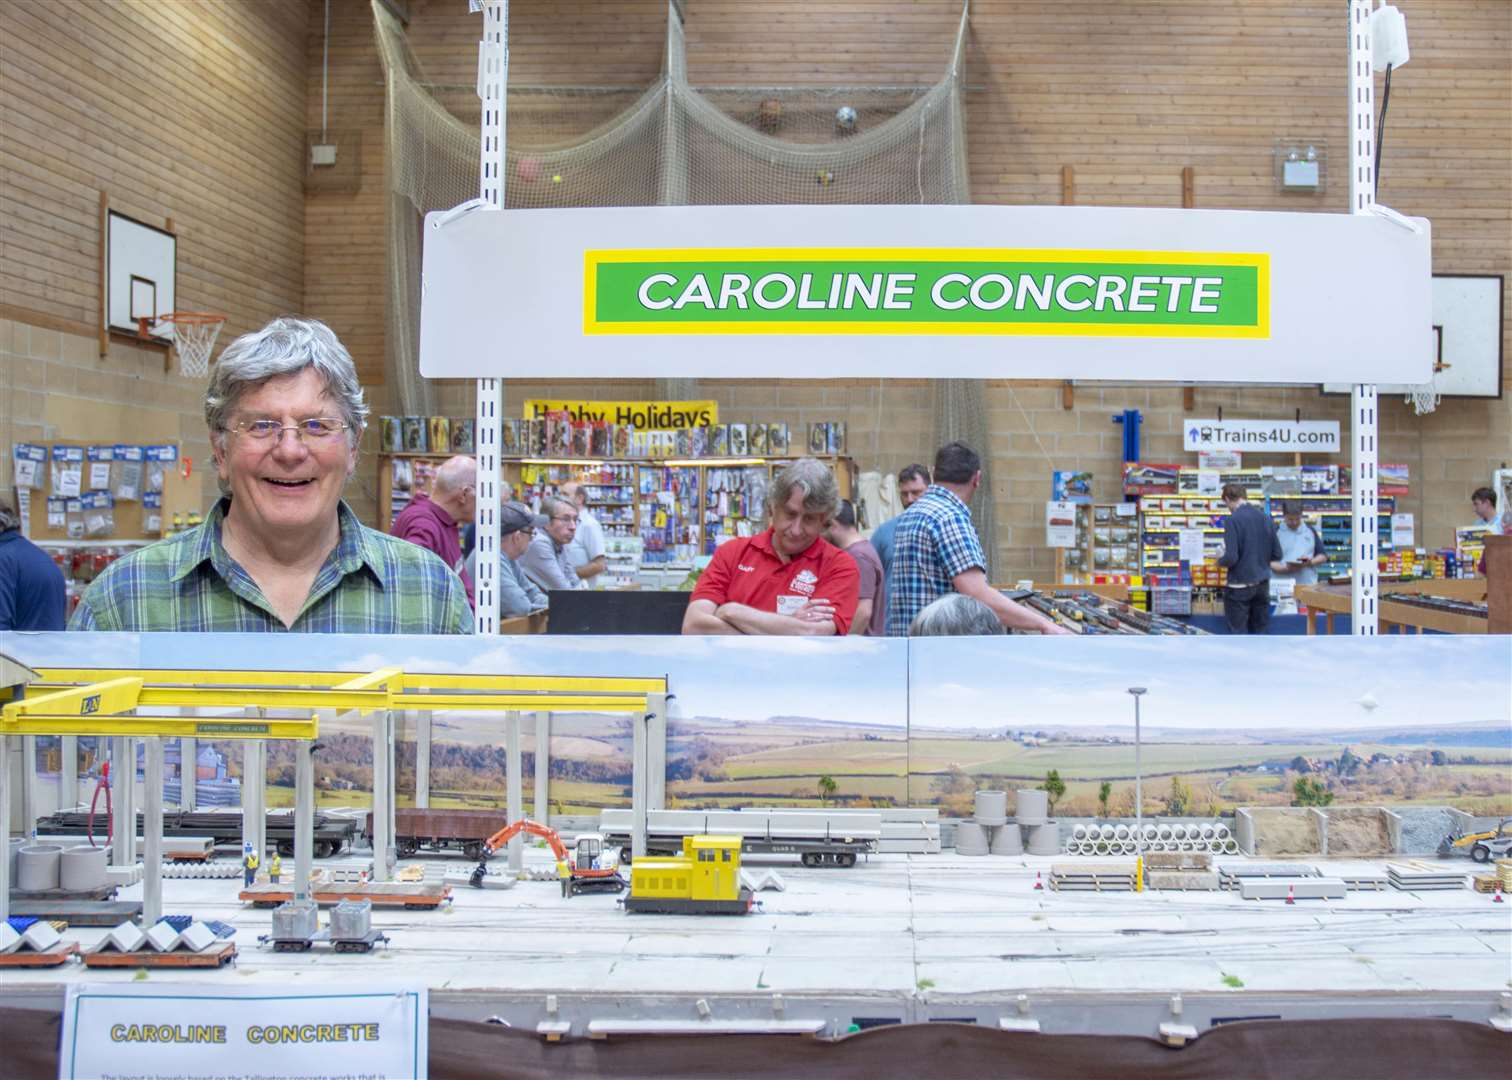 Graham Morfoot who won the Best Layout award with Caroline Concrete based on Tallington Photo: Lee Hellwing